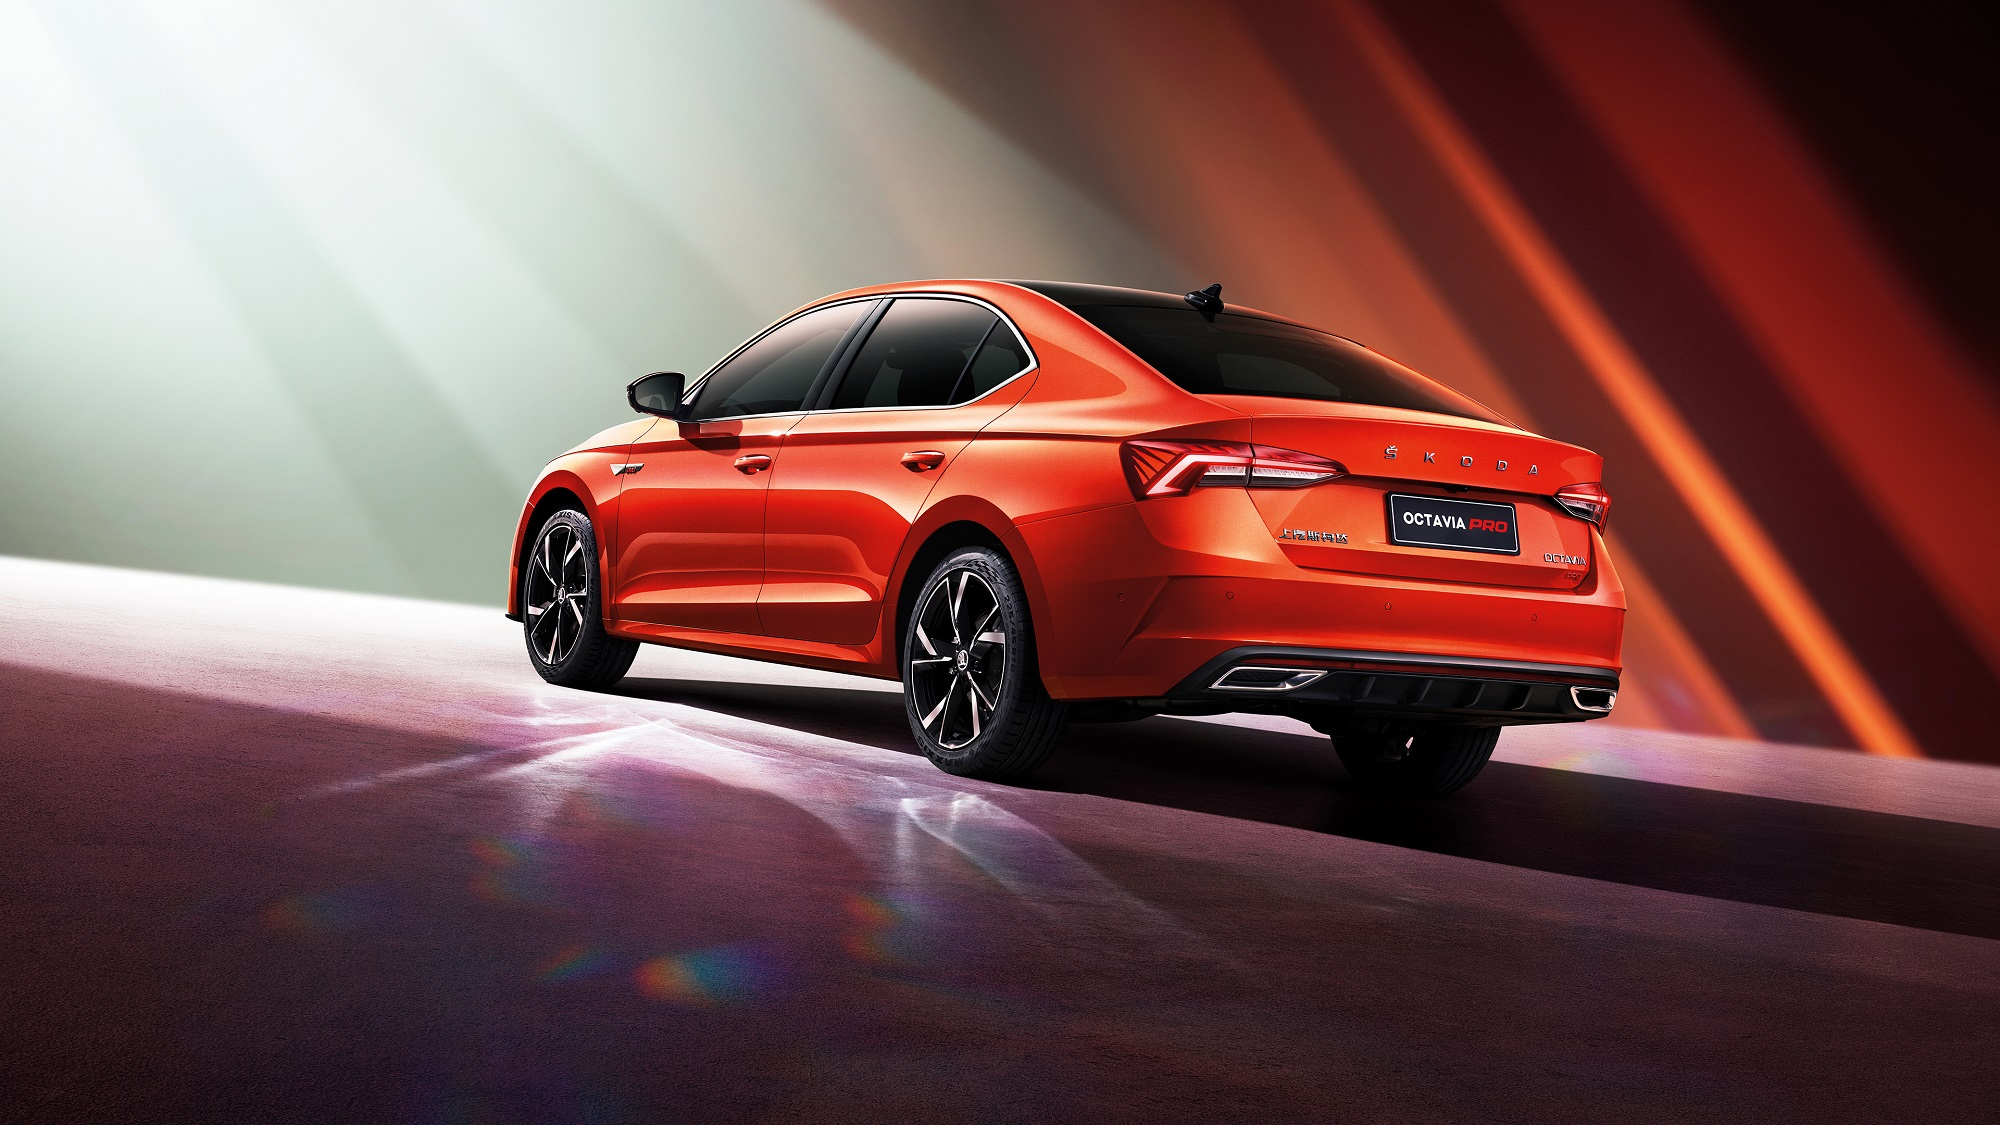 The all-new SKODA OCTAVIA PRO for China: More digital and emotive, and with a lot of extra space - Image 2